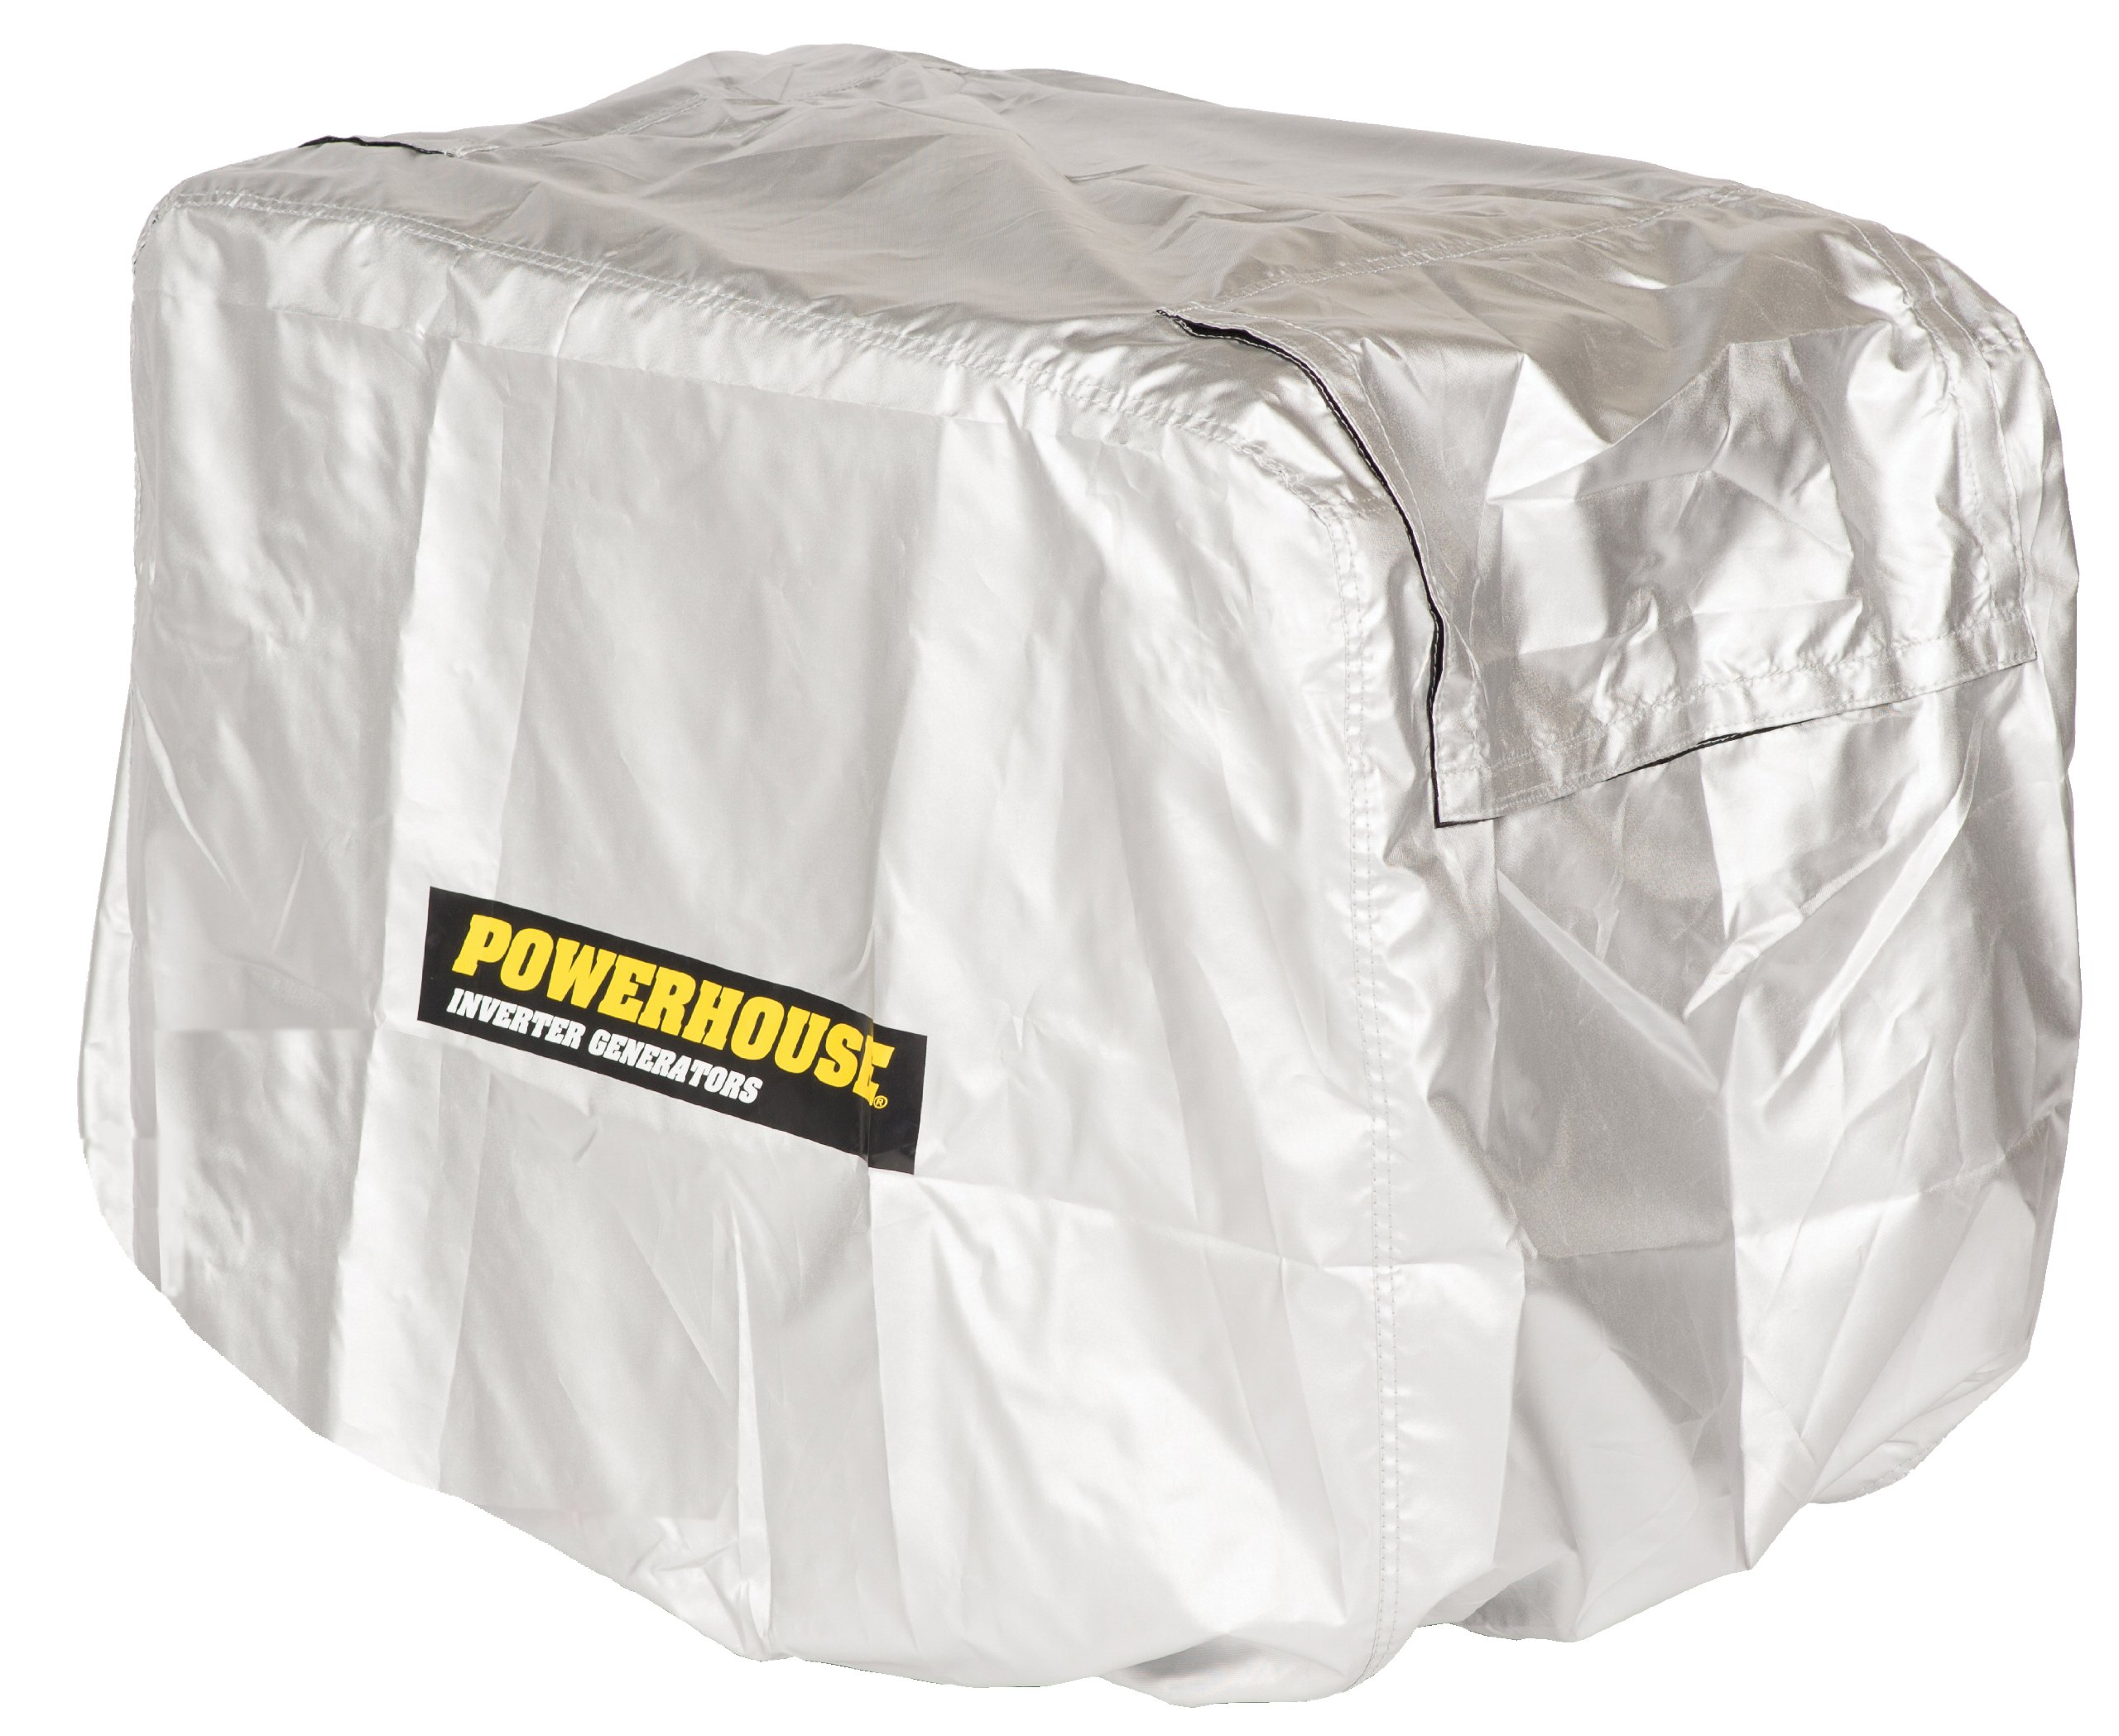 Powerhouse 80505 Generator Cover for PH6500Ri, XX-Large